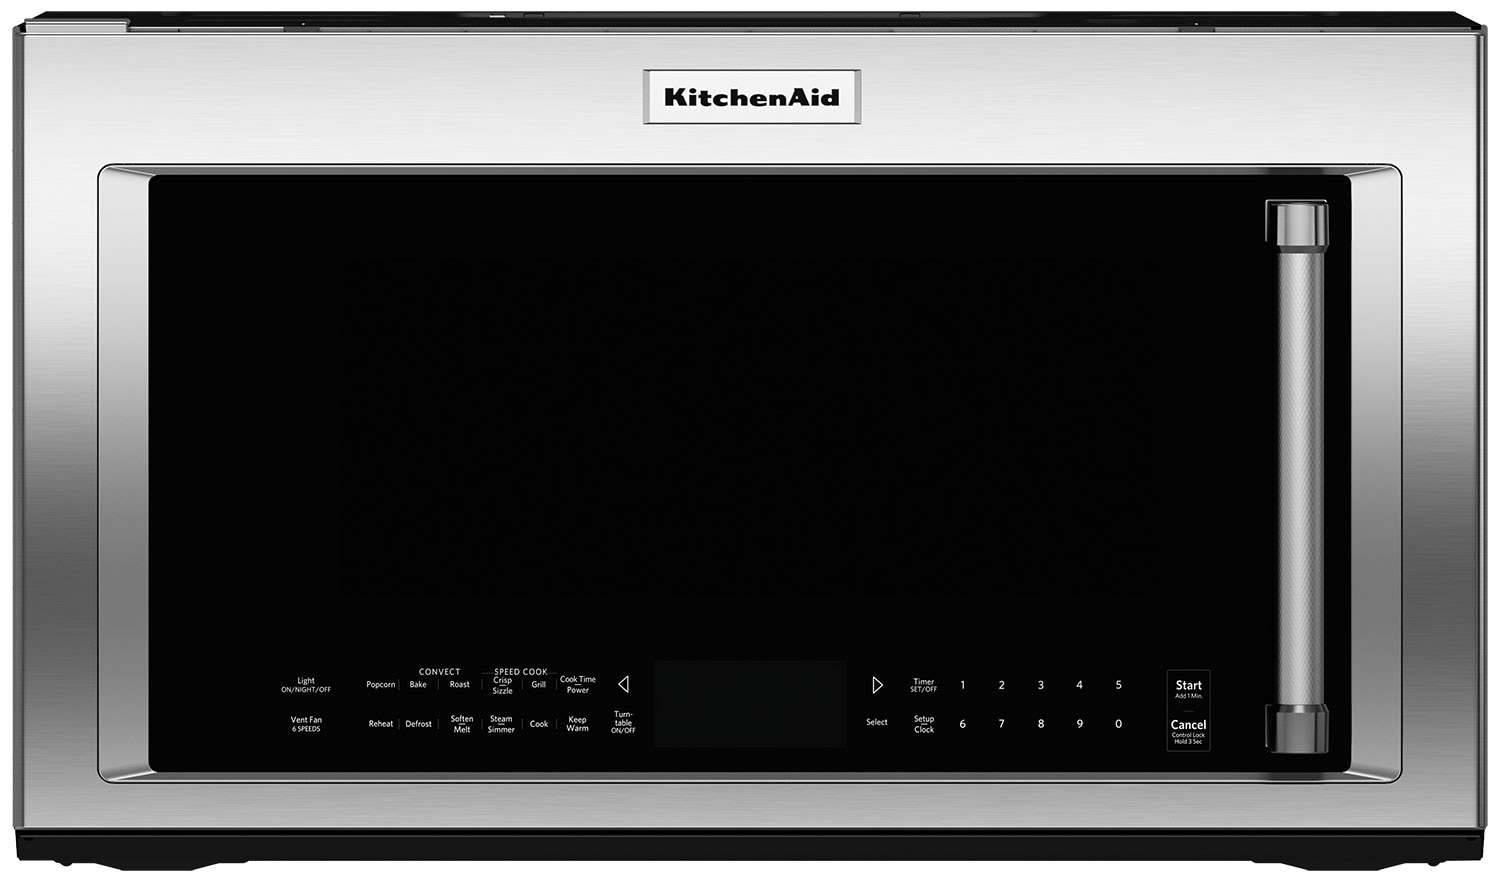 Cooking Products - KitchenAid 1.9 Cu. Ft. Convection Microwave with High-Speed Cooking - Stainless Steel